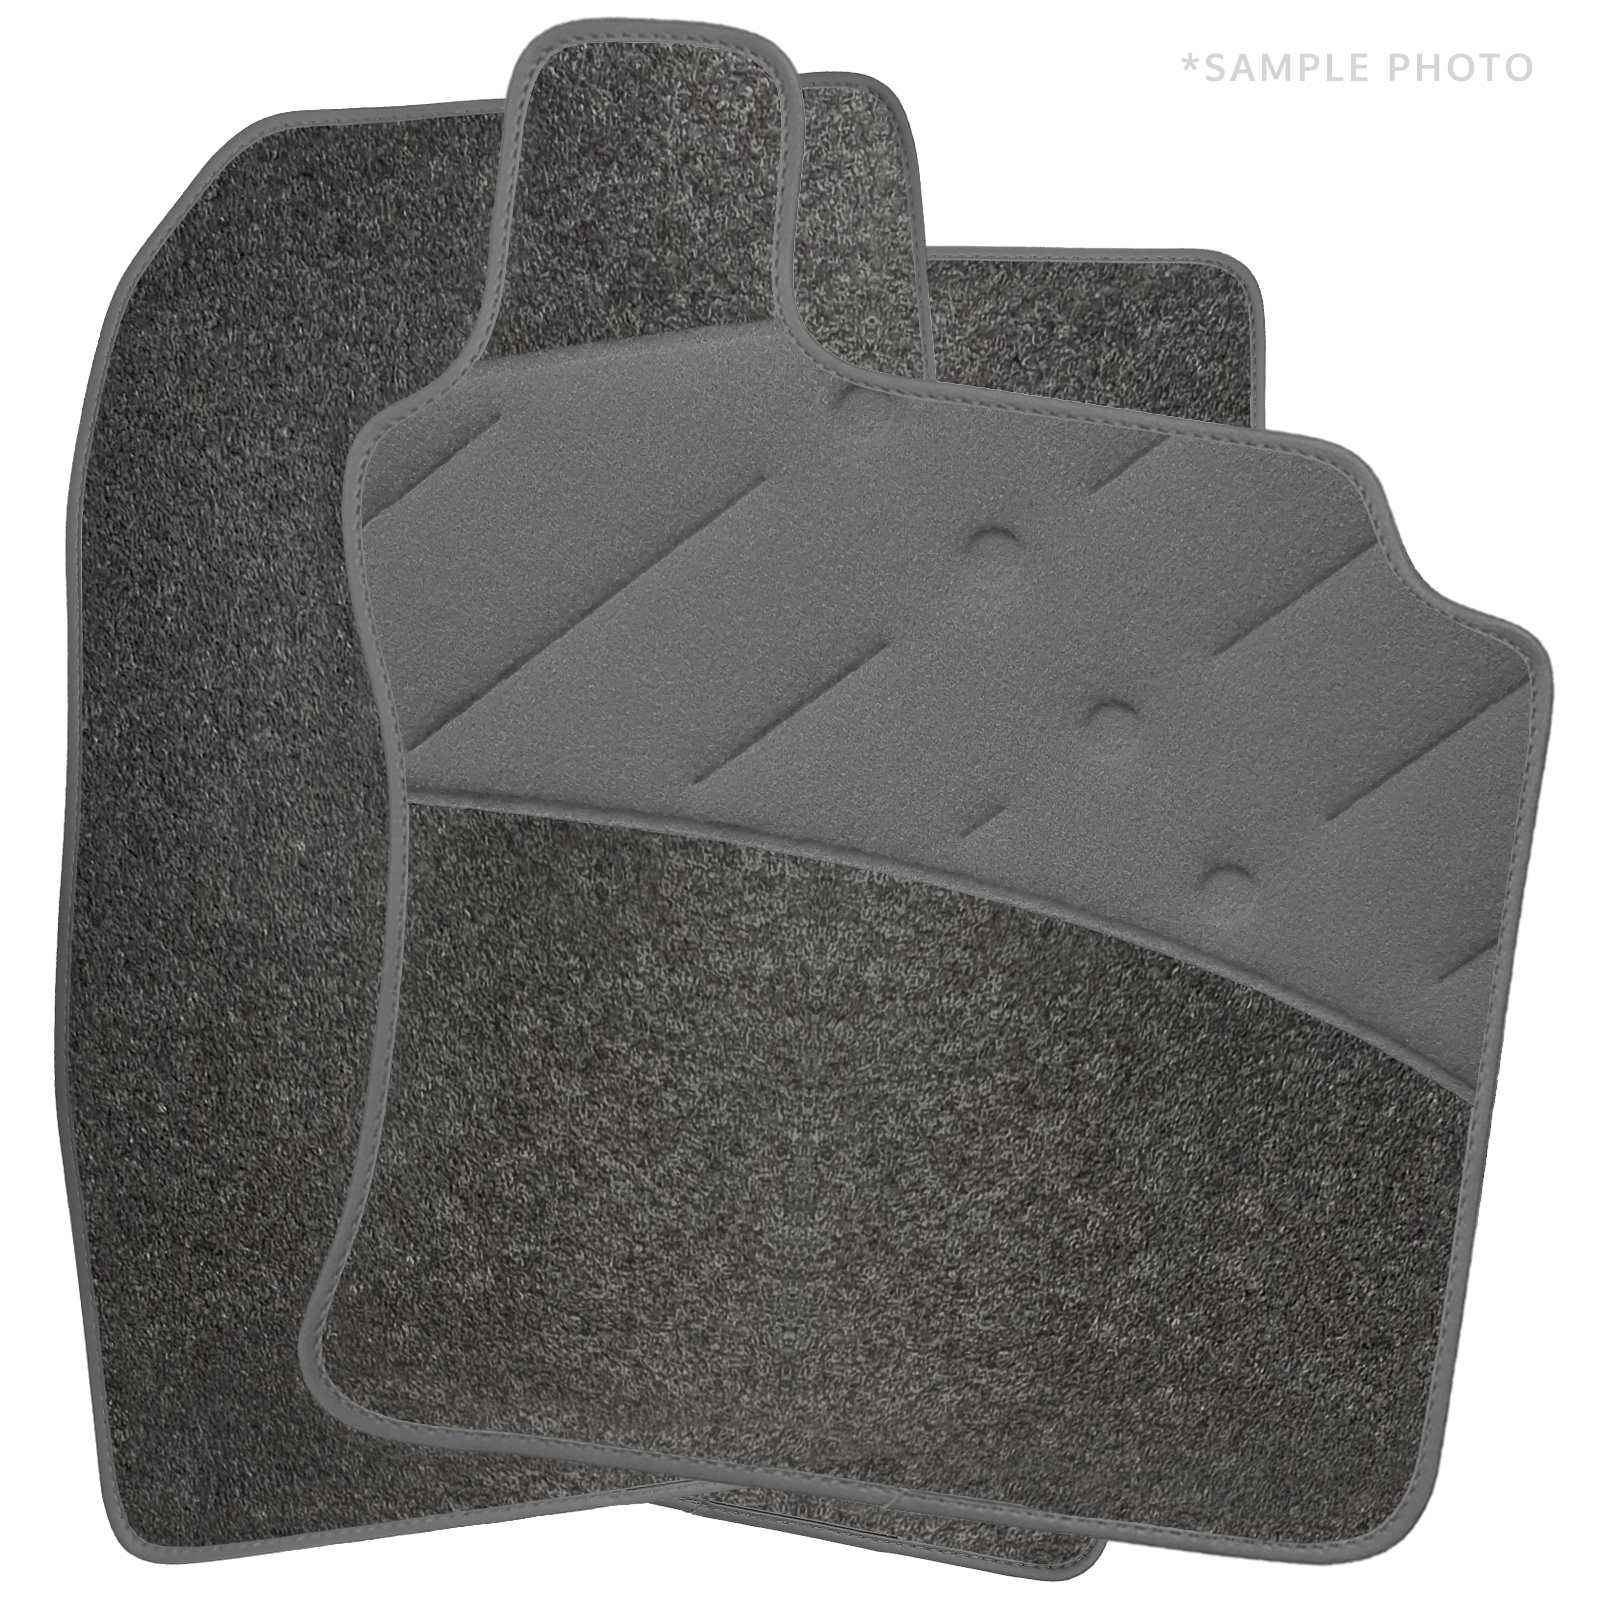 Alfa Romeo 156 Tailored Grey Car Mats 1997-2007